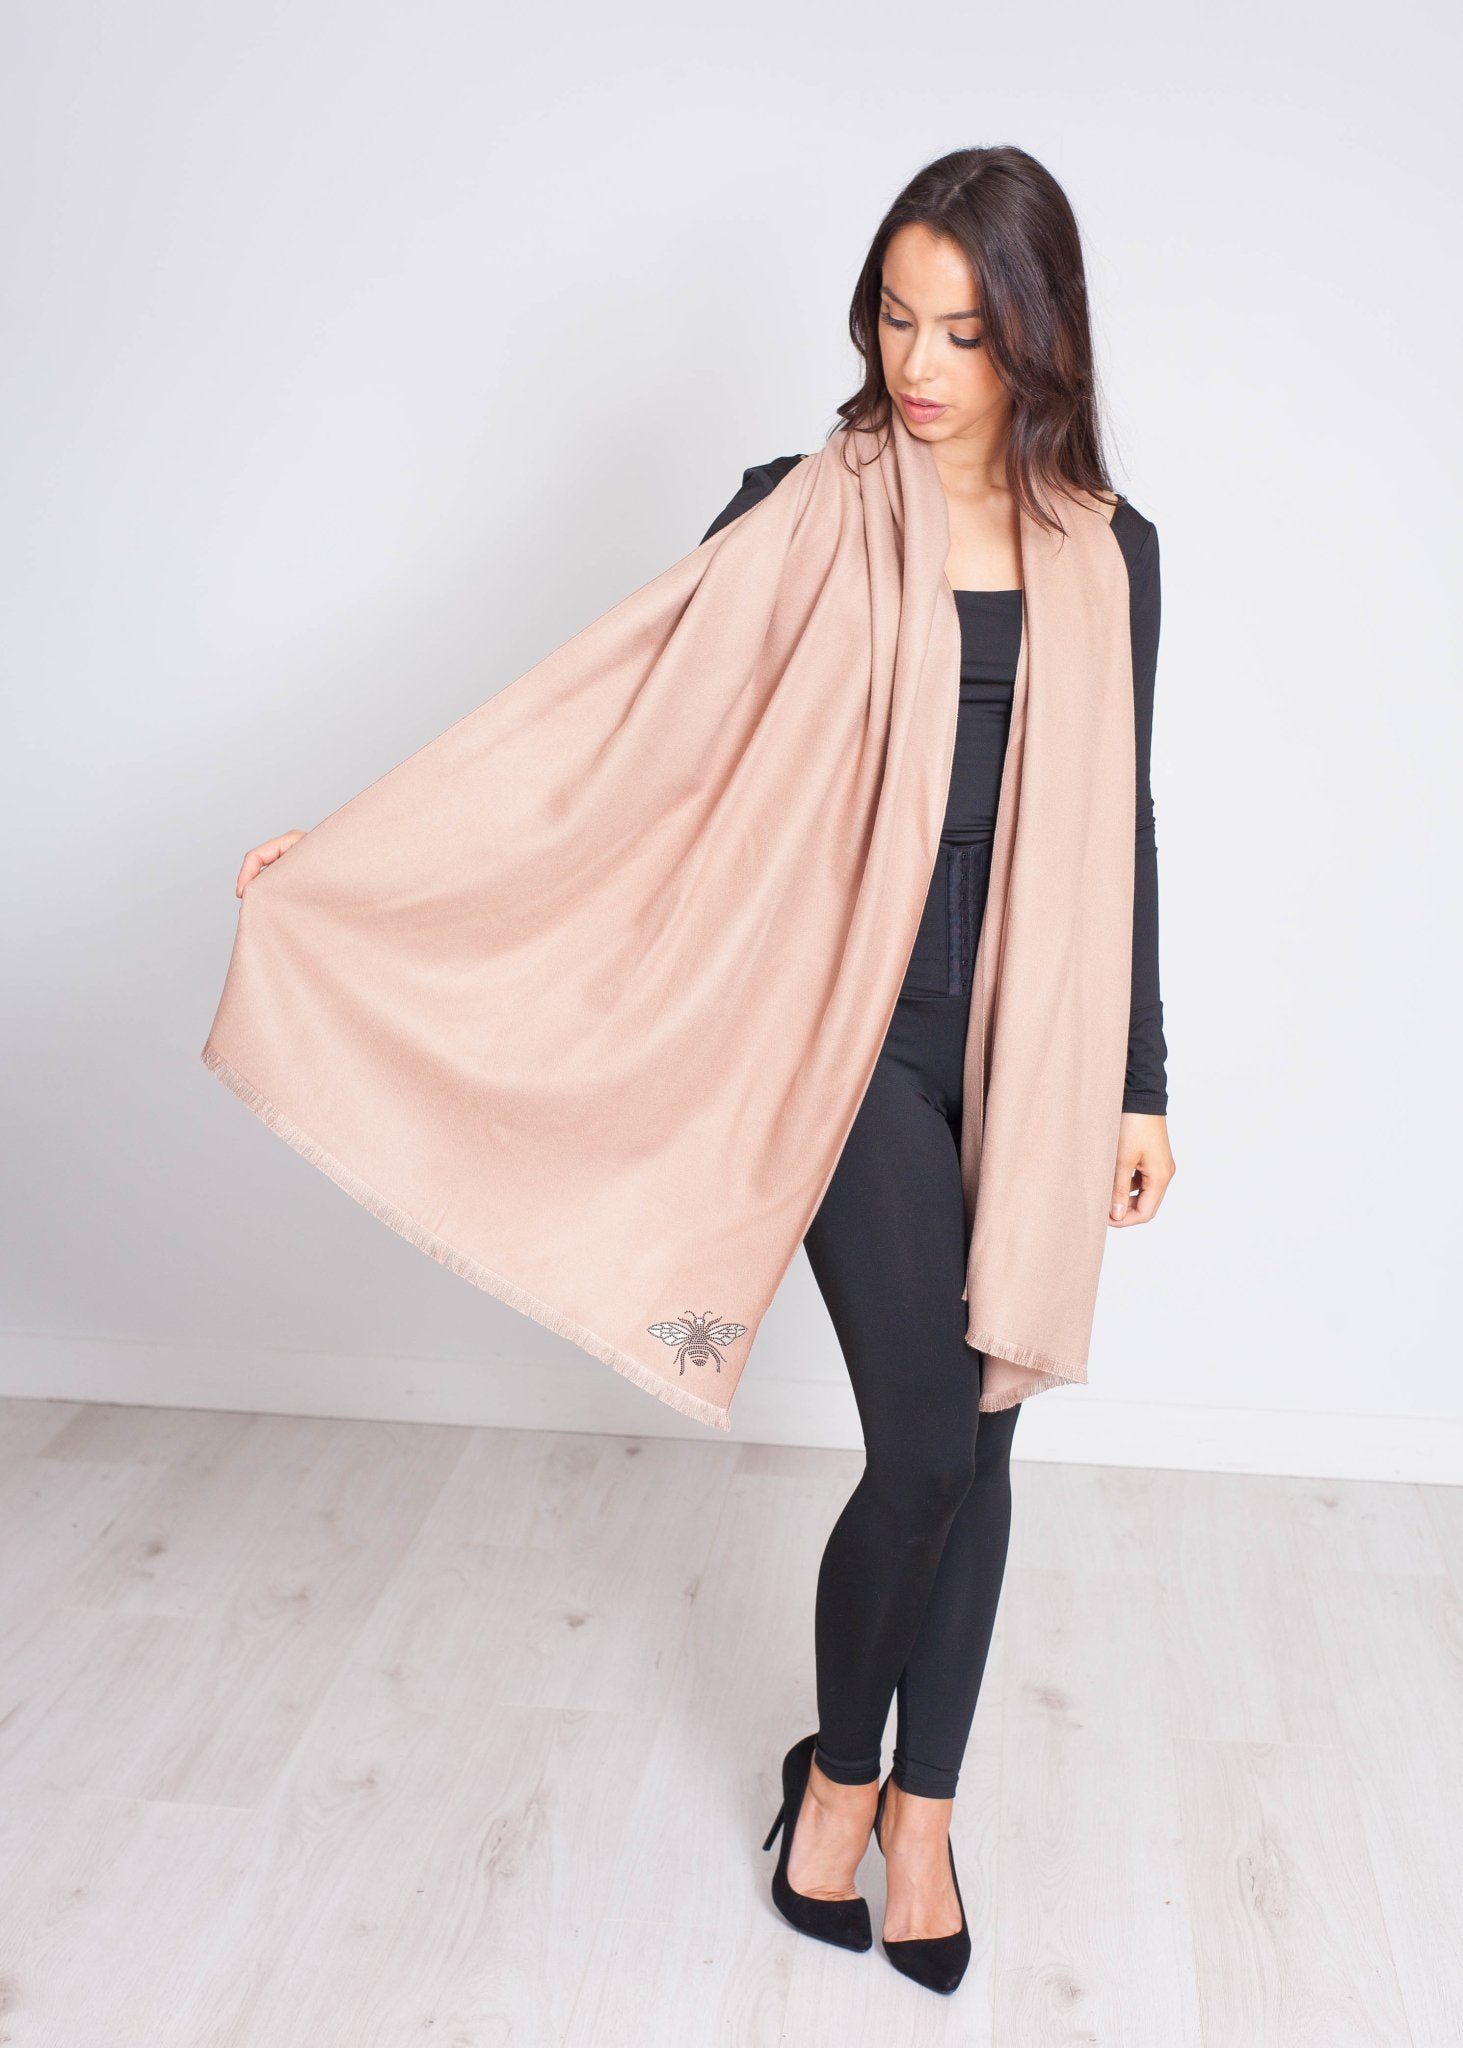 Blair Embellished Bee Scarf In Blush - The Walk in Wardrobe